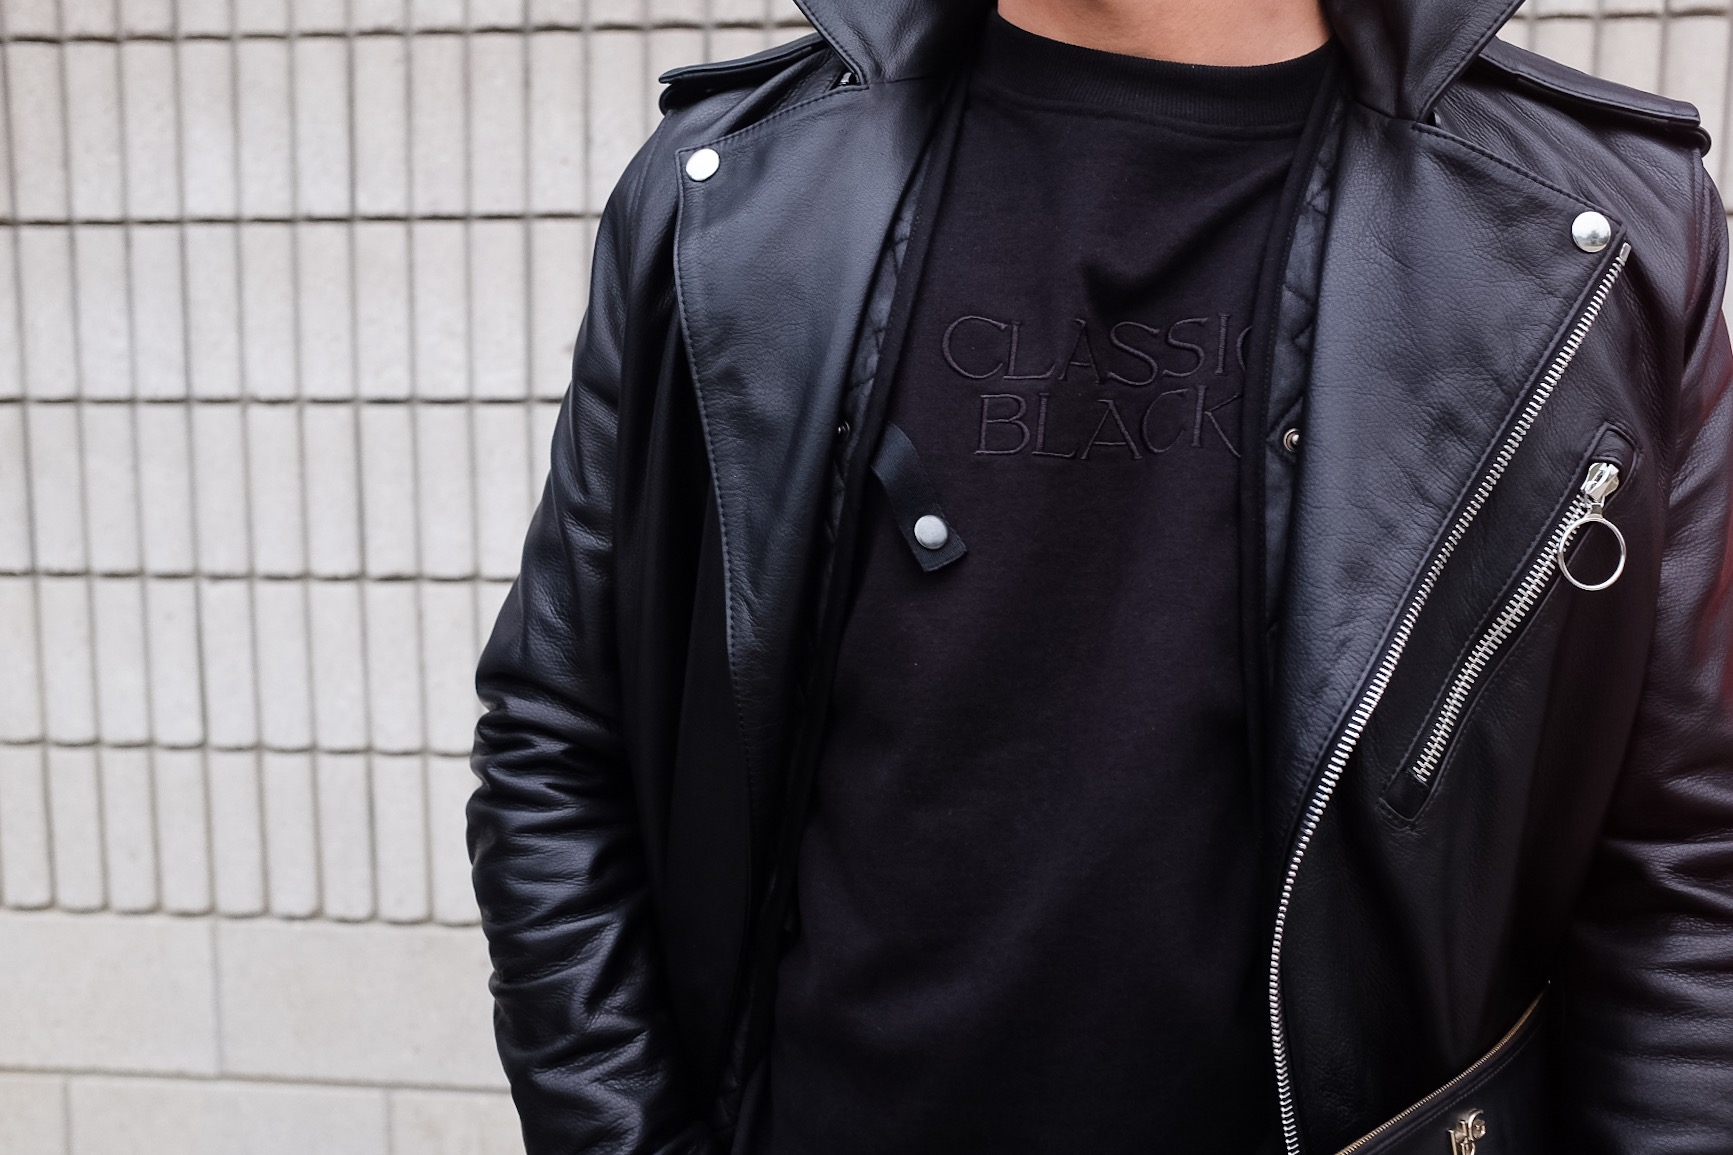 Keeping it Classic with black.